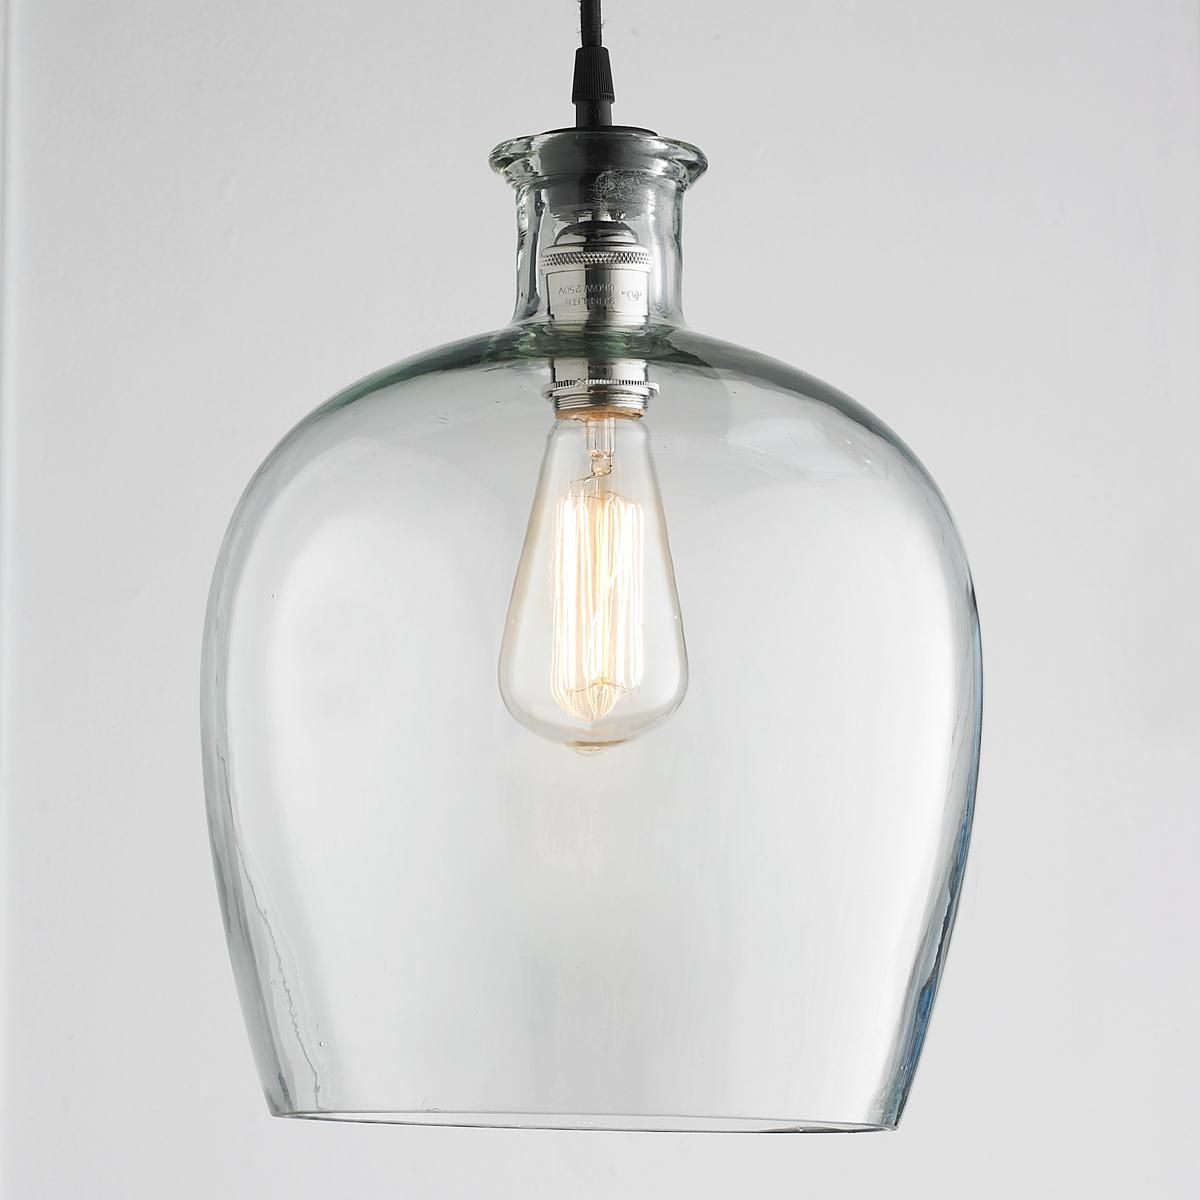 Simple Pendant Lighting Large Carafe Glass Pendant Light Clear The Way For This